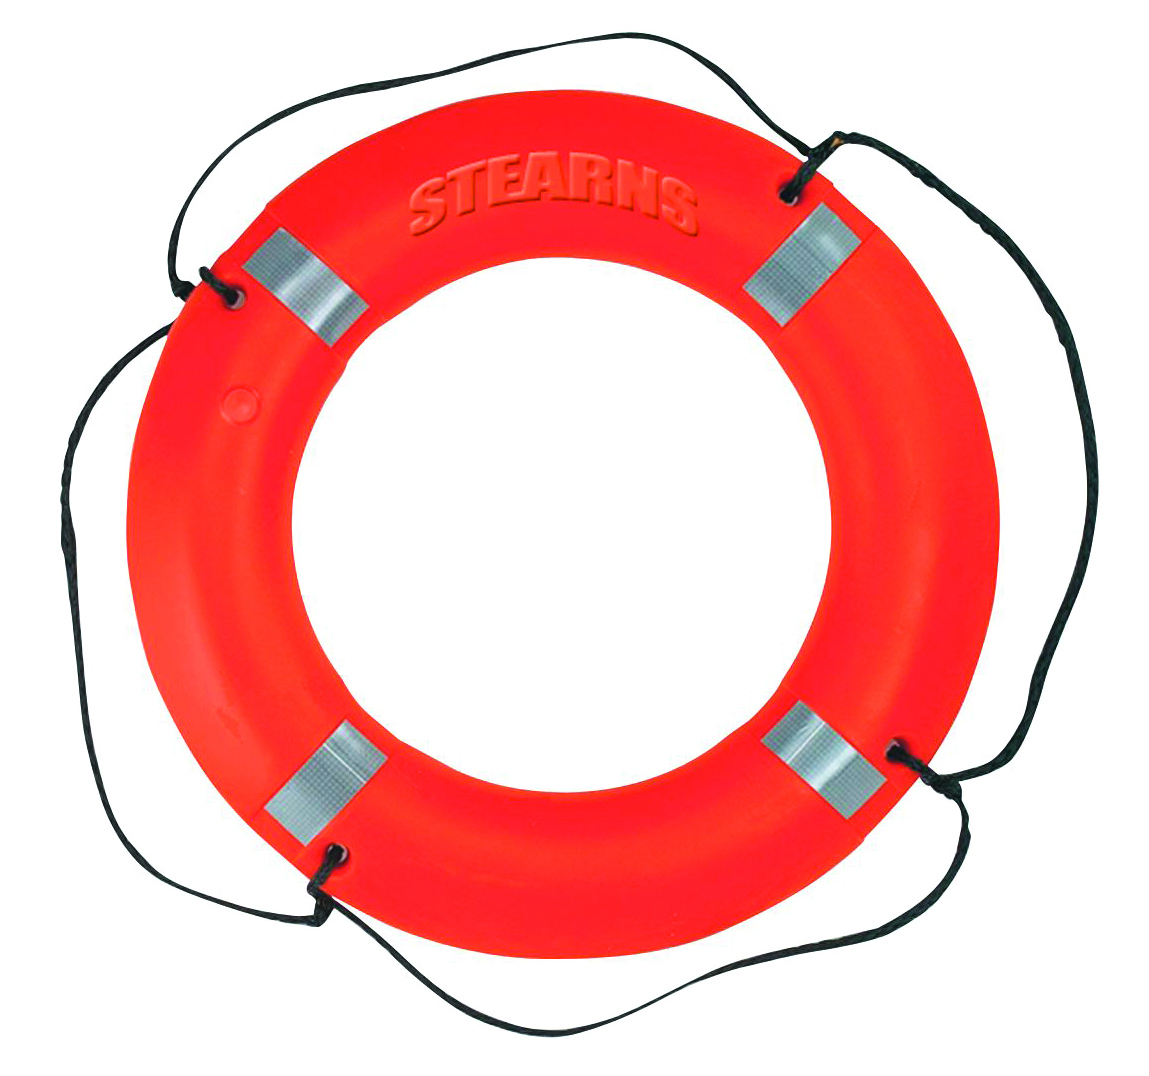 I030ORG-00-REF - Ring Buoy and Buoy Bag-30 in. Ring Buoy-----UOM: 1/EA